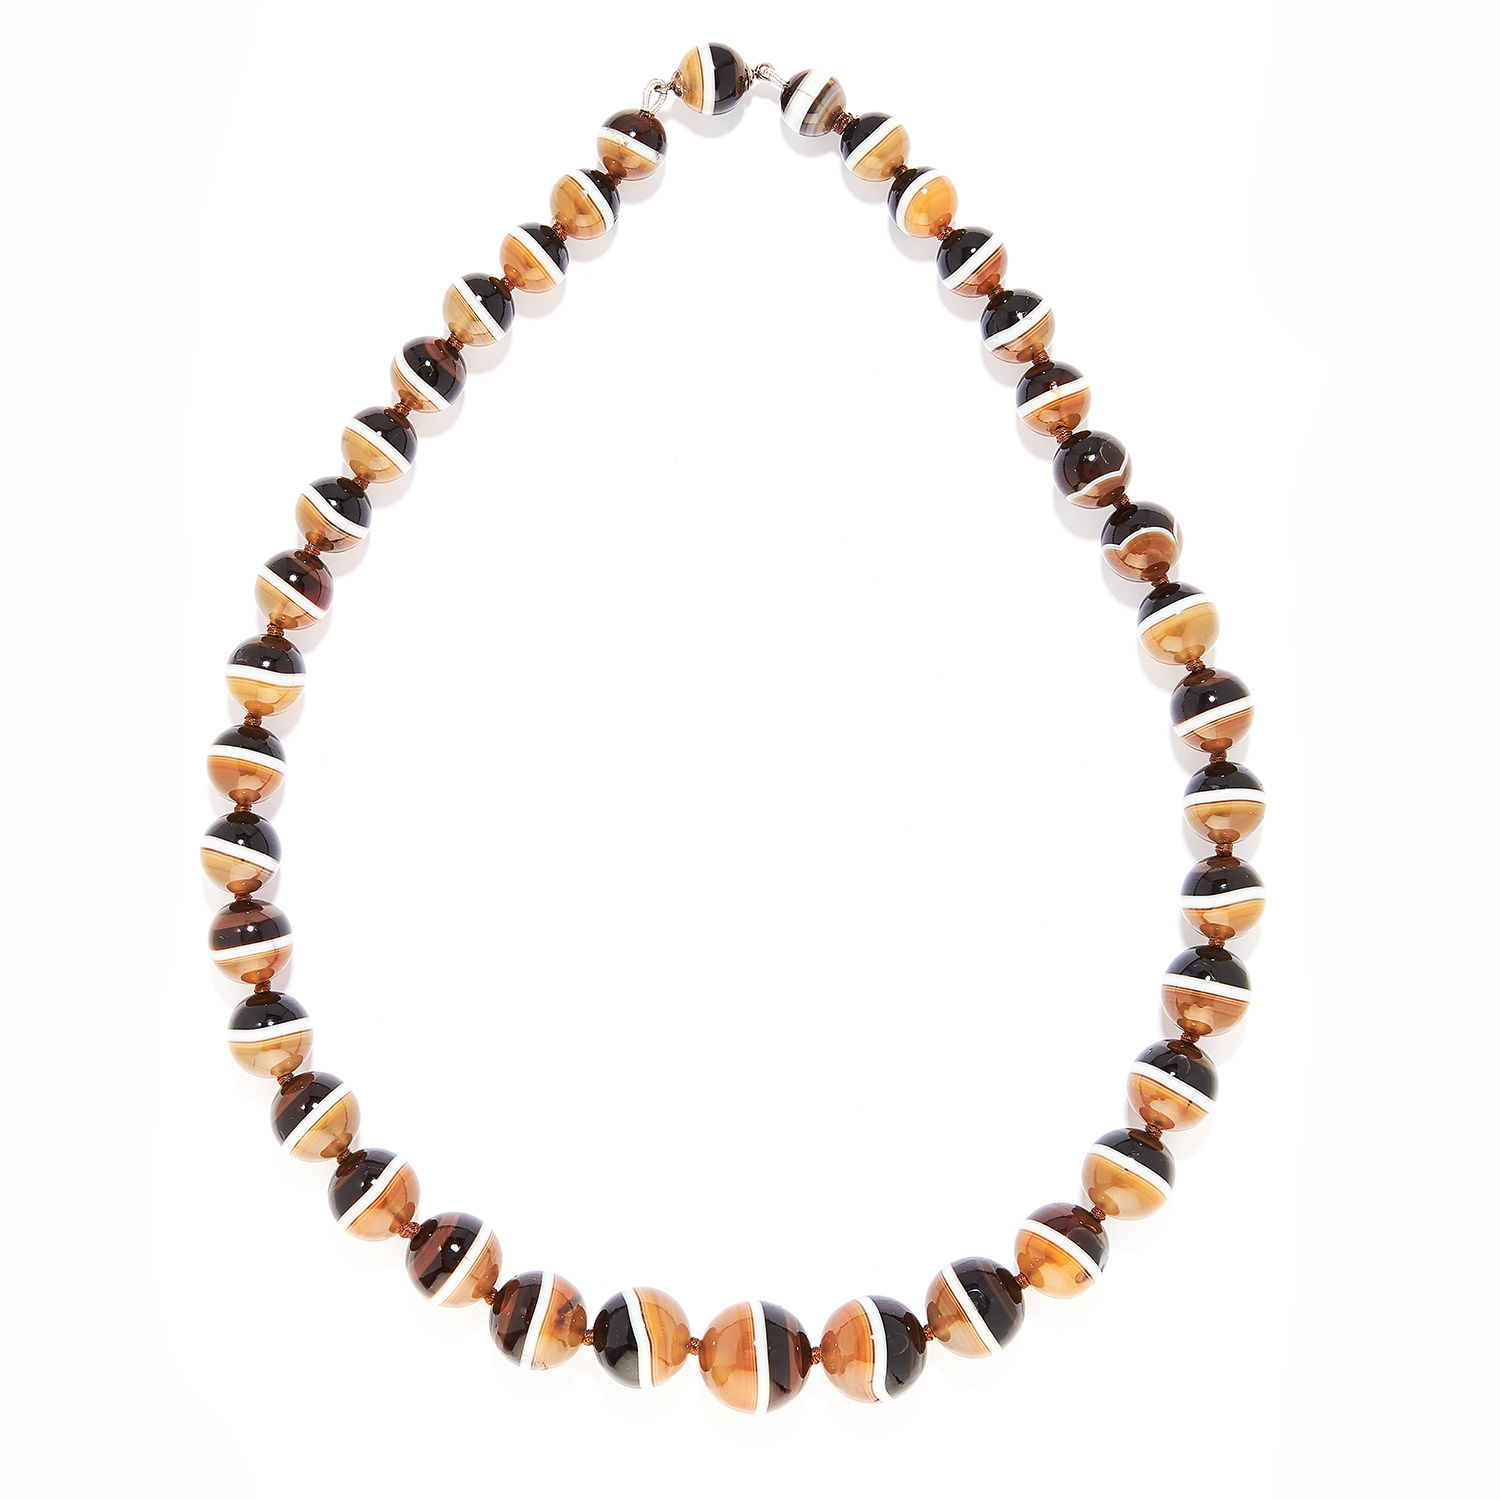 BANDED AGATE BEAD NECKLACE comprising of a single row of a single row of banded agate beads